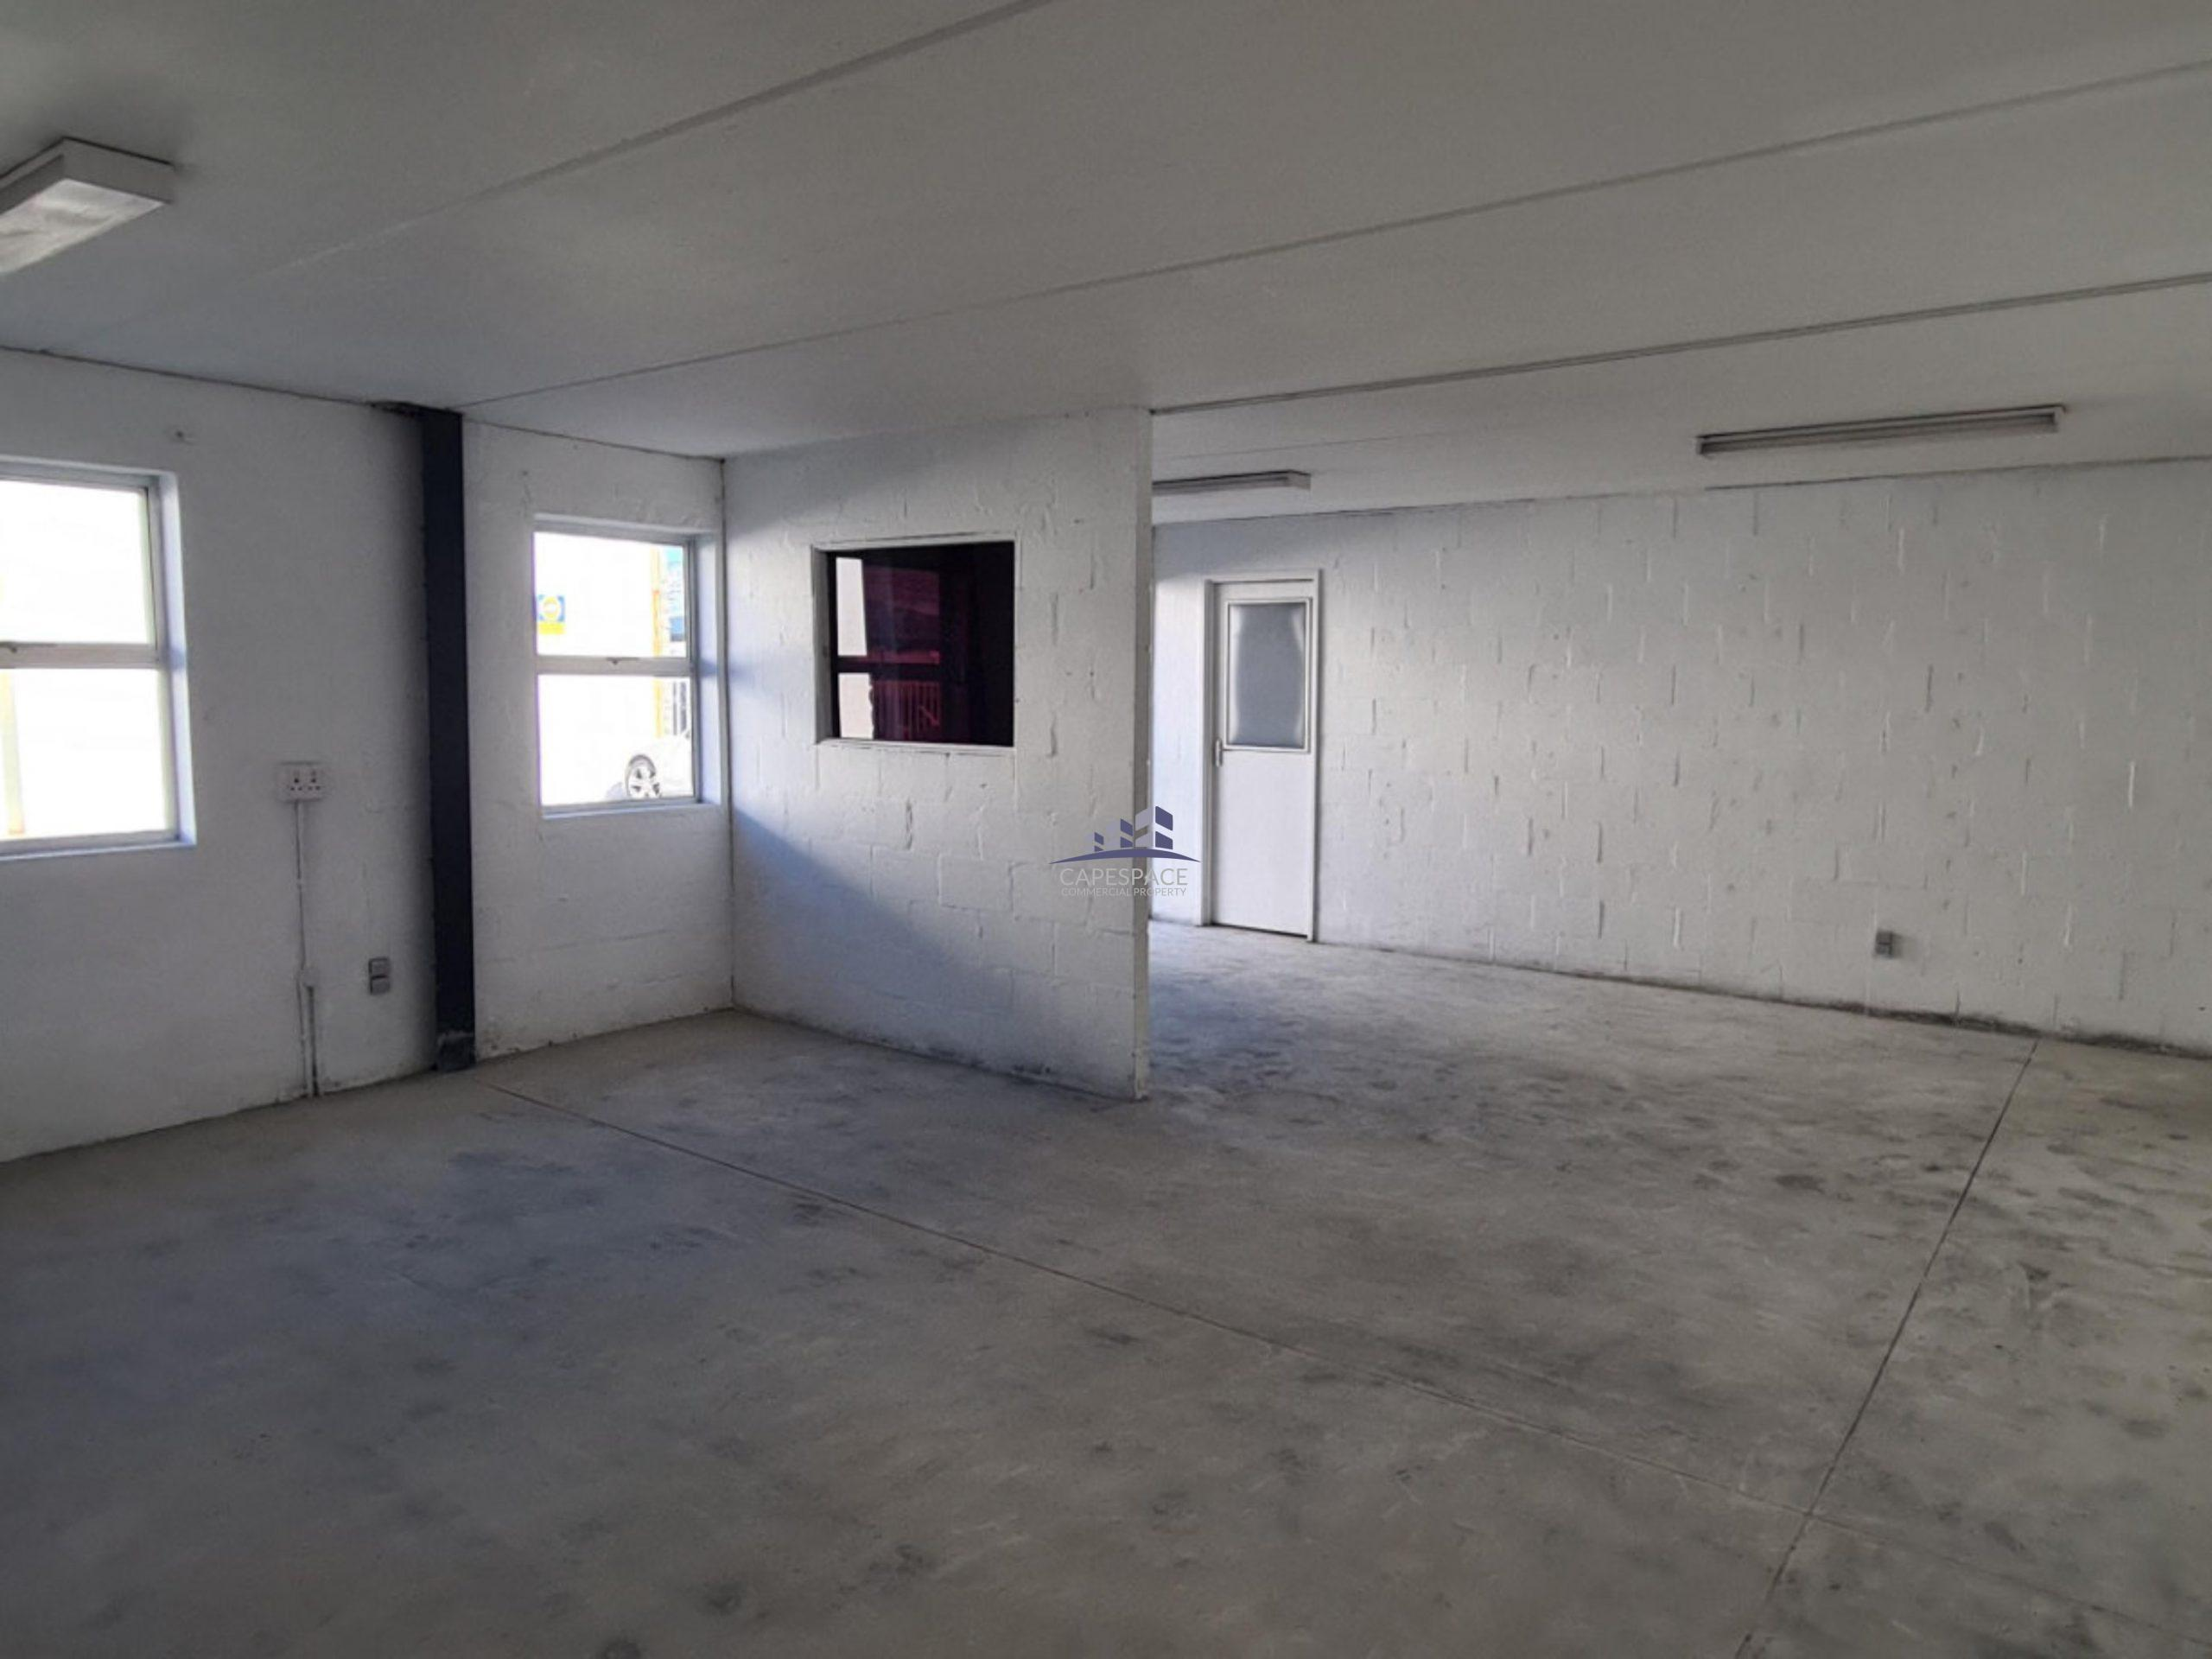 568 m² Warehouse to Rent Esvian Park Epping Industria